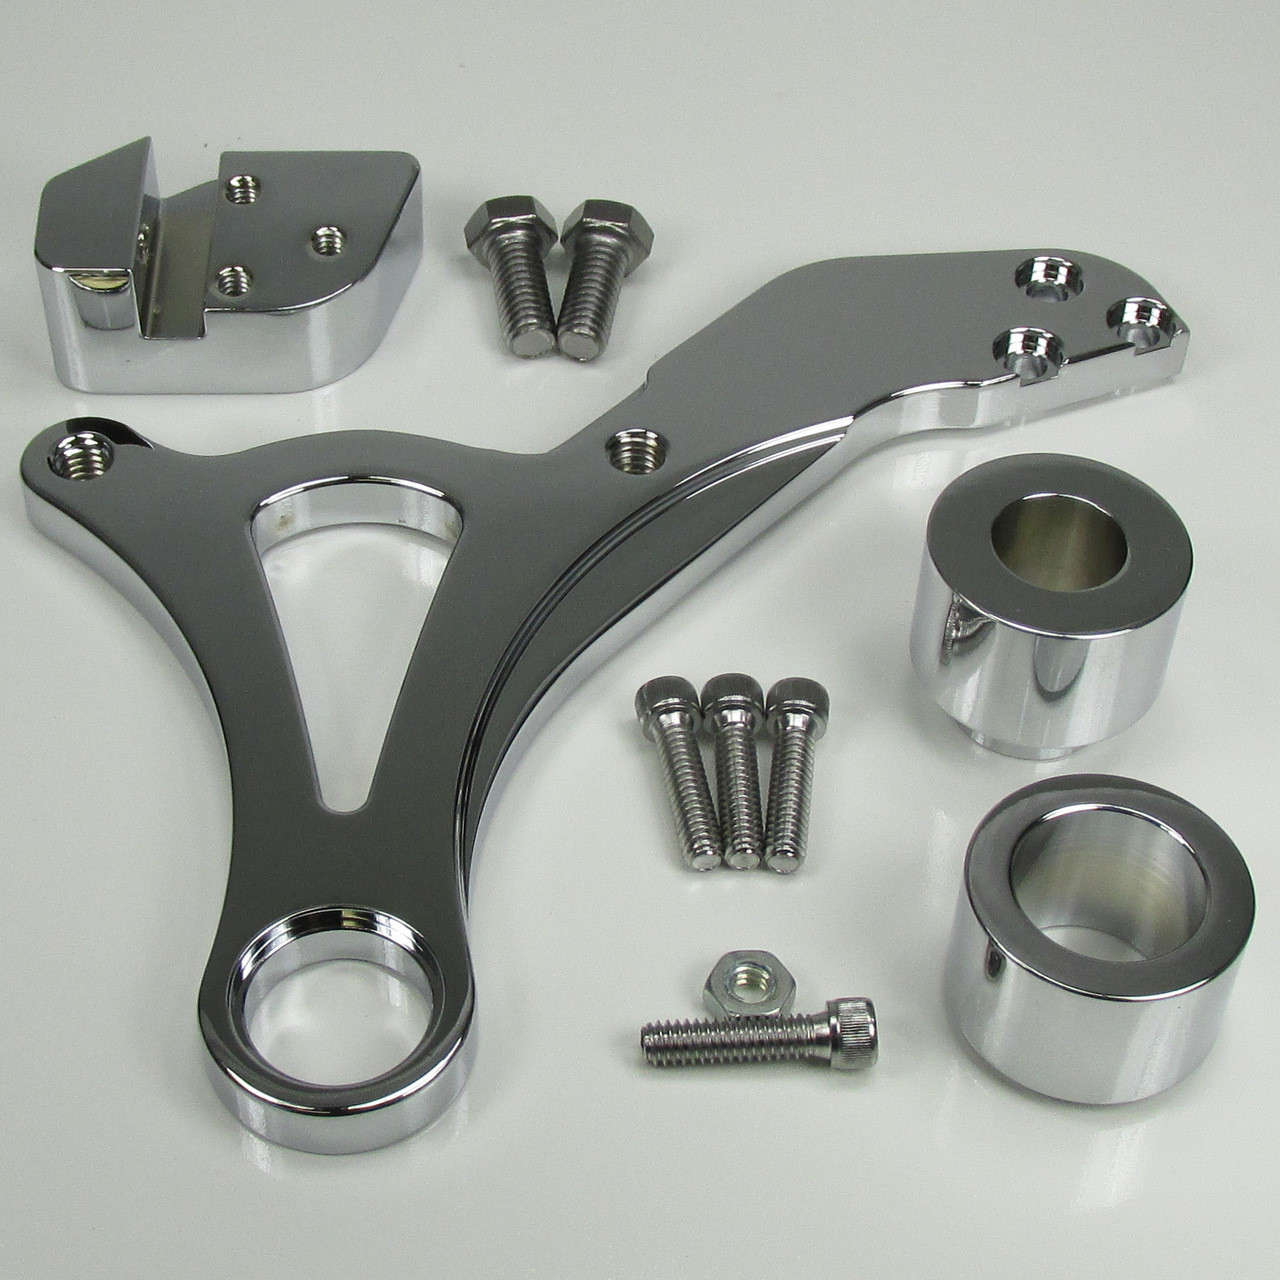 Ultima© Rear Brake Caliper Mount - Chrome, For 2000-Later Harley Dyna, Also  Available with a 4-Piston Caliper